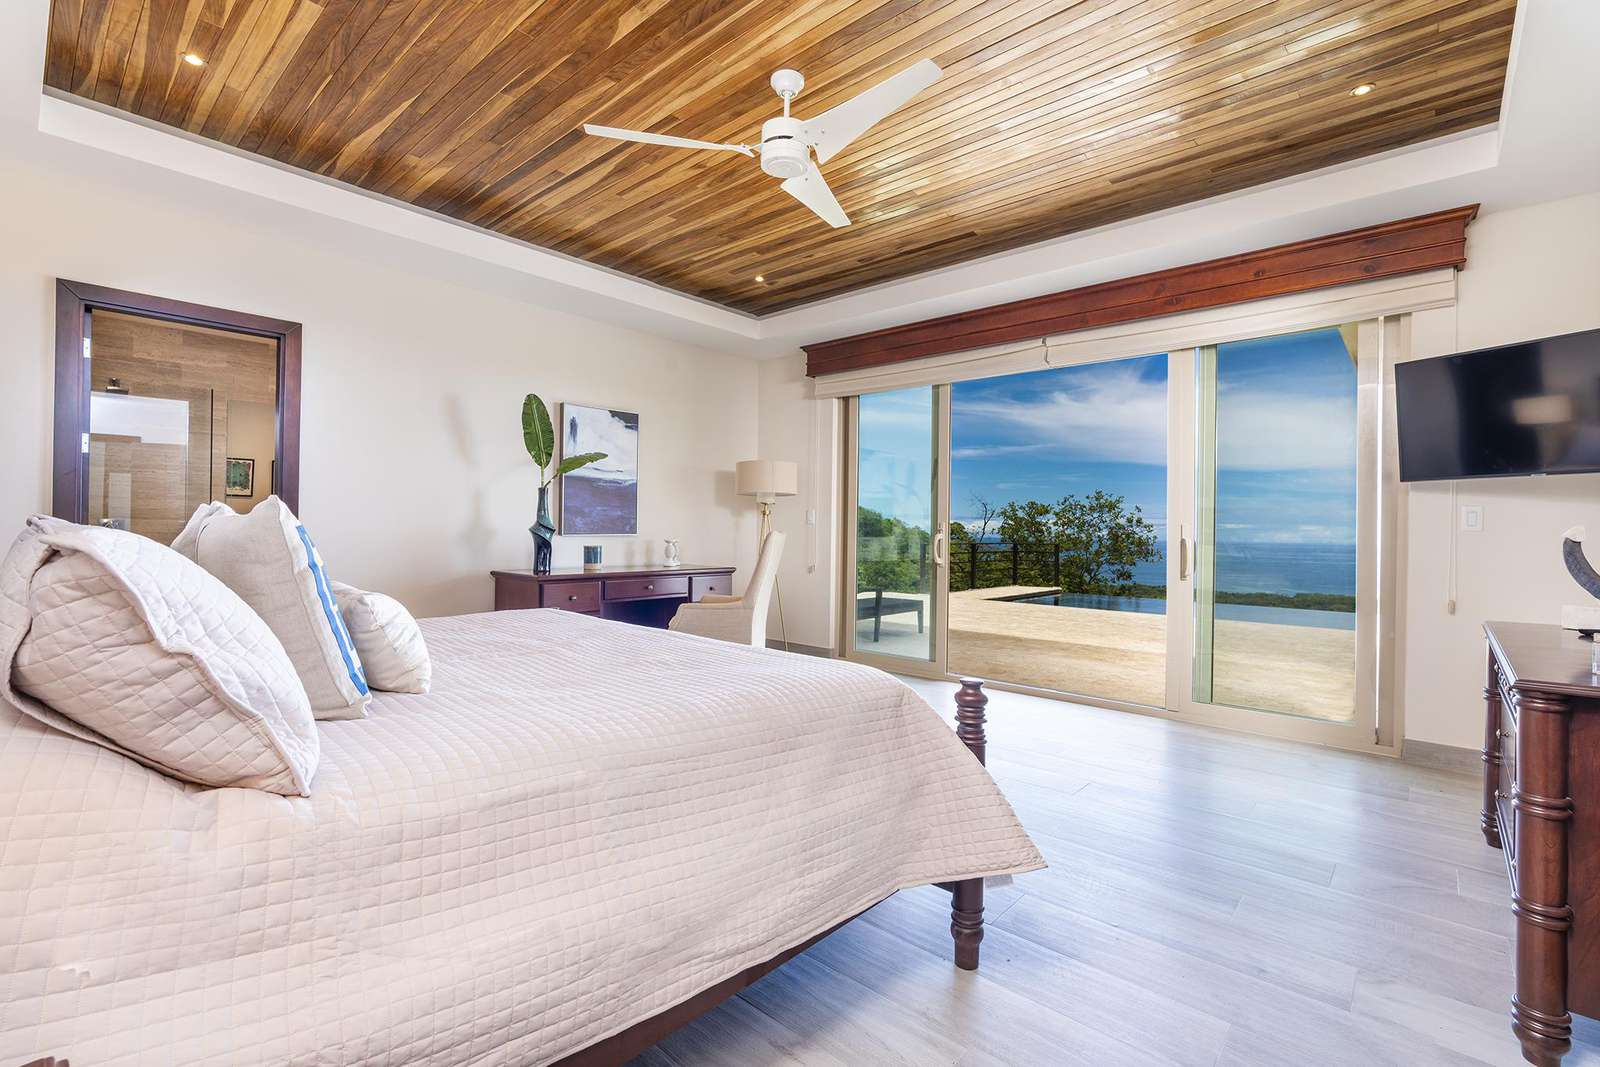 Master bedroom #1, main level, full private bathroom, walk in closet, ocean views and access to pool and terrace area